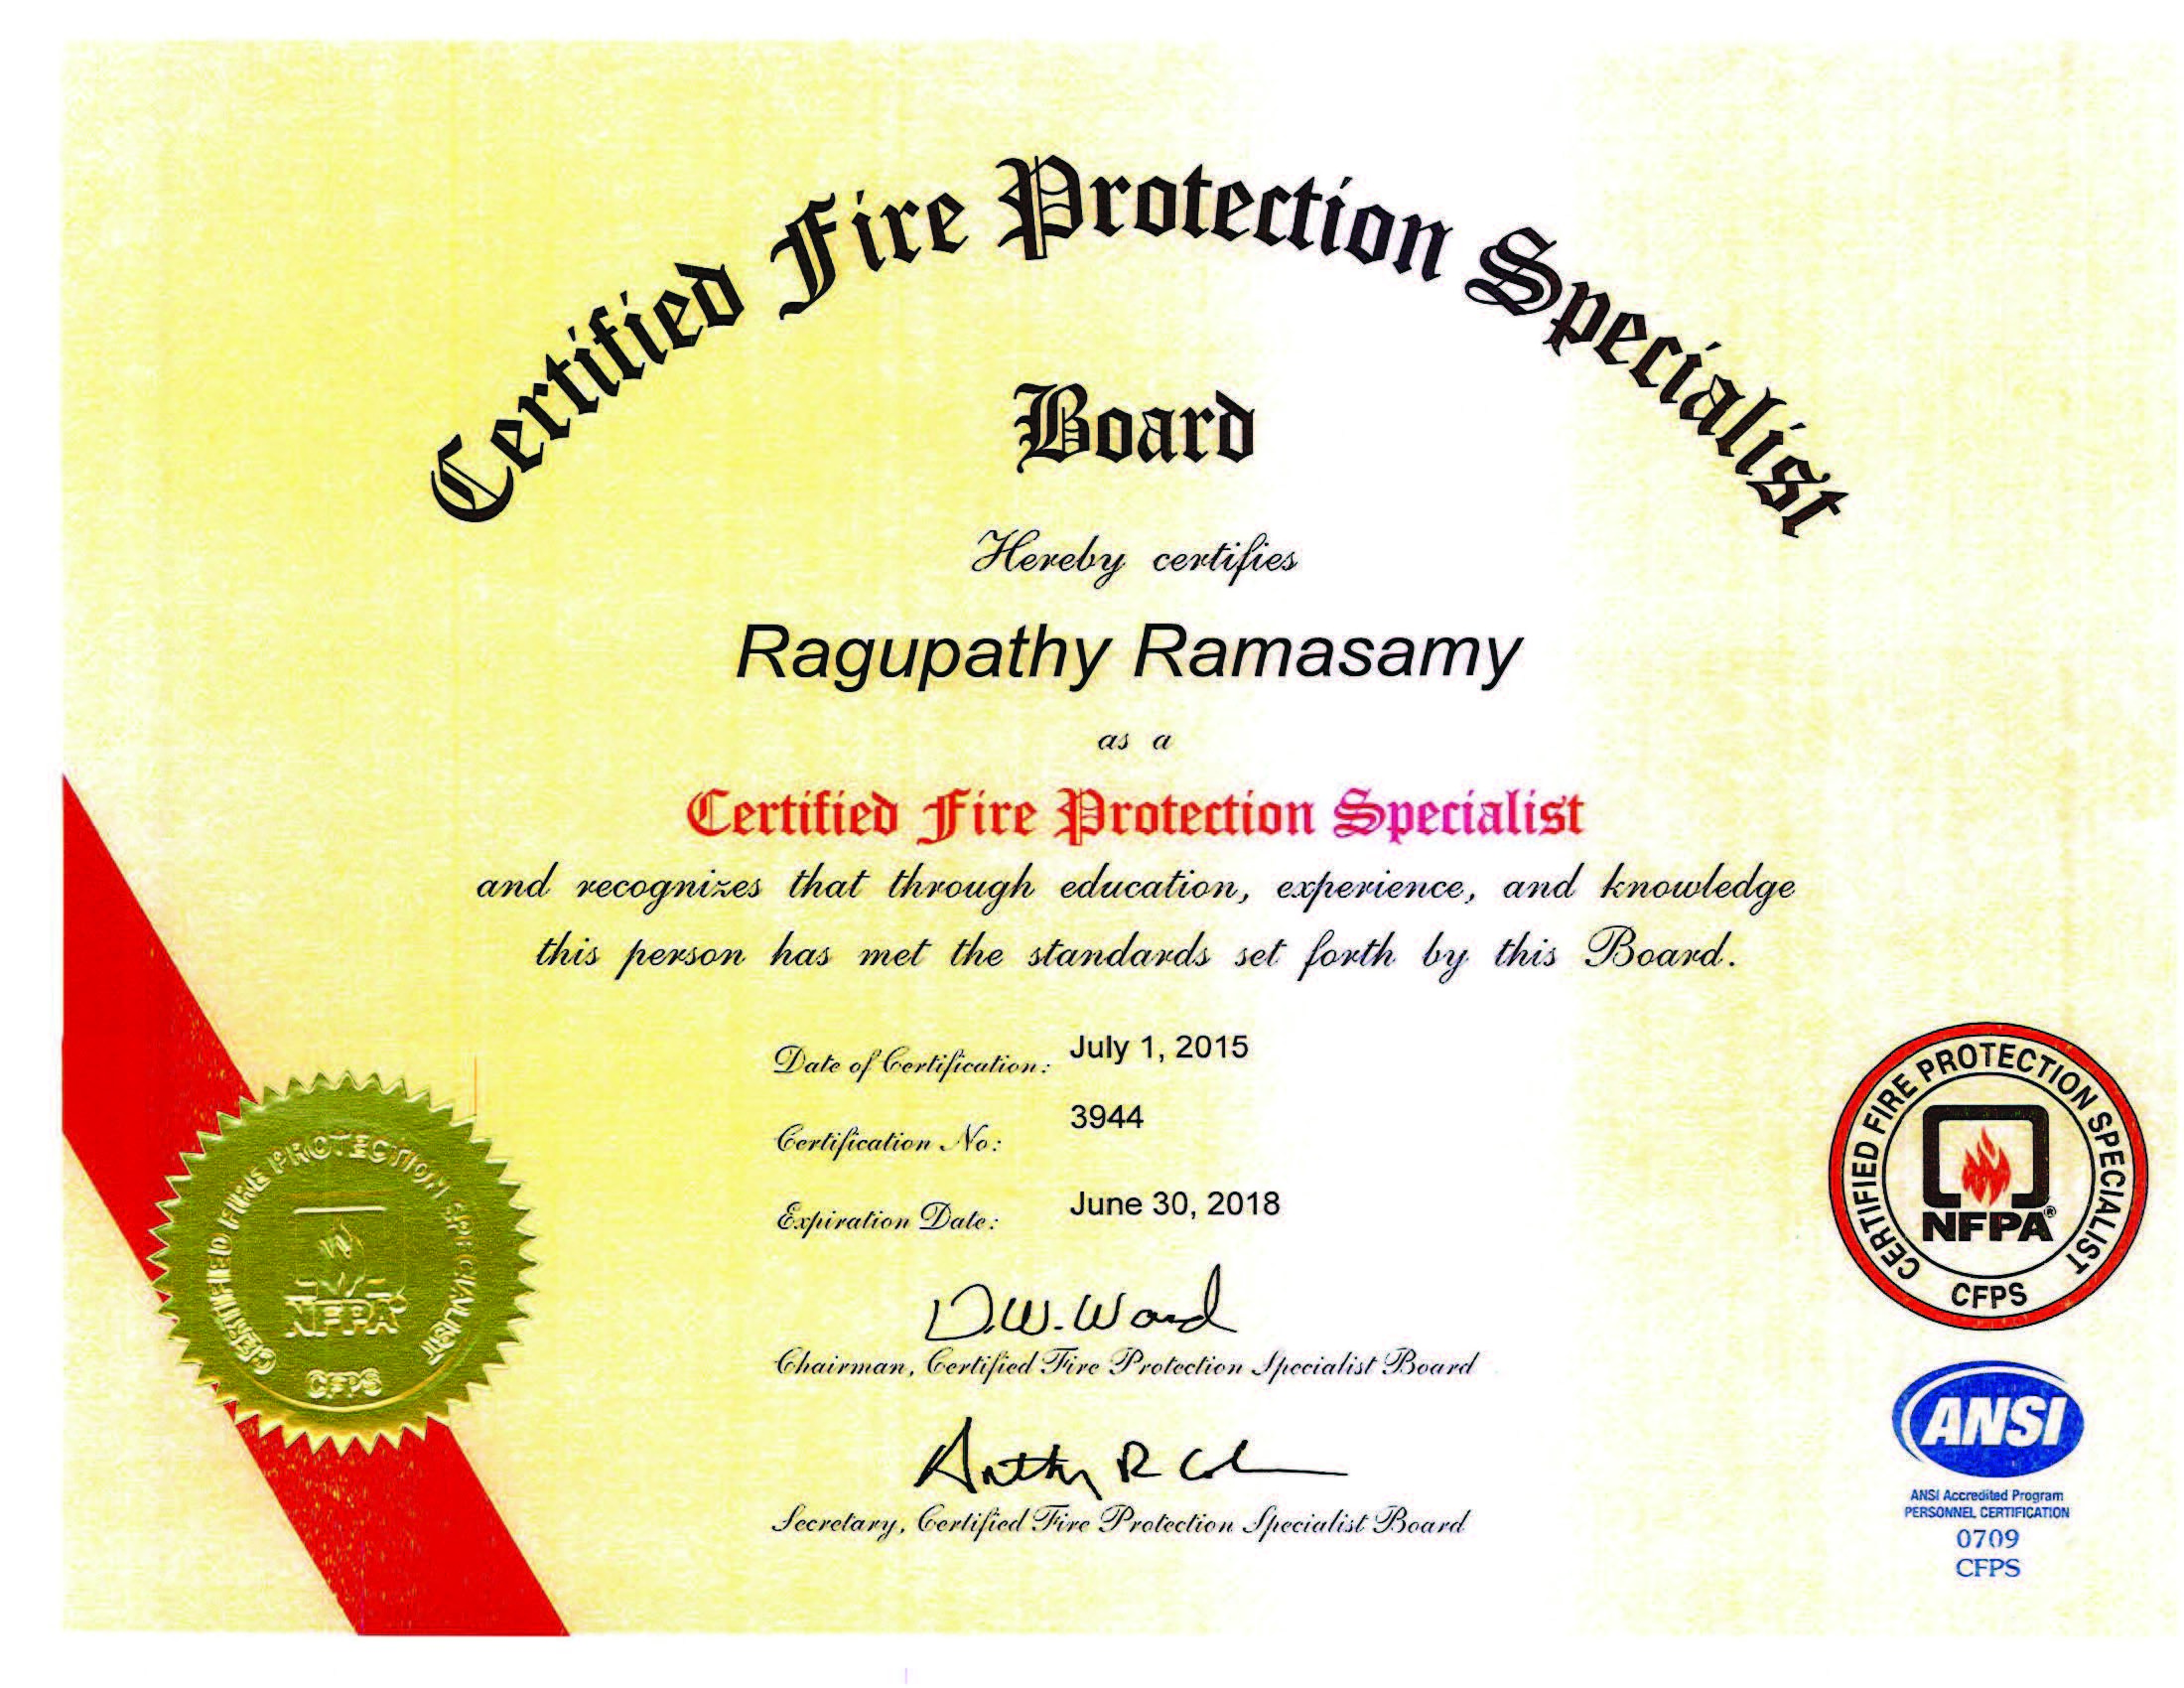 Ragupathy ramasamy cfps pmp bayt certified fire protection specialist cfps nfpa certificate xflitez Image collections